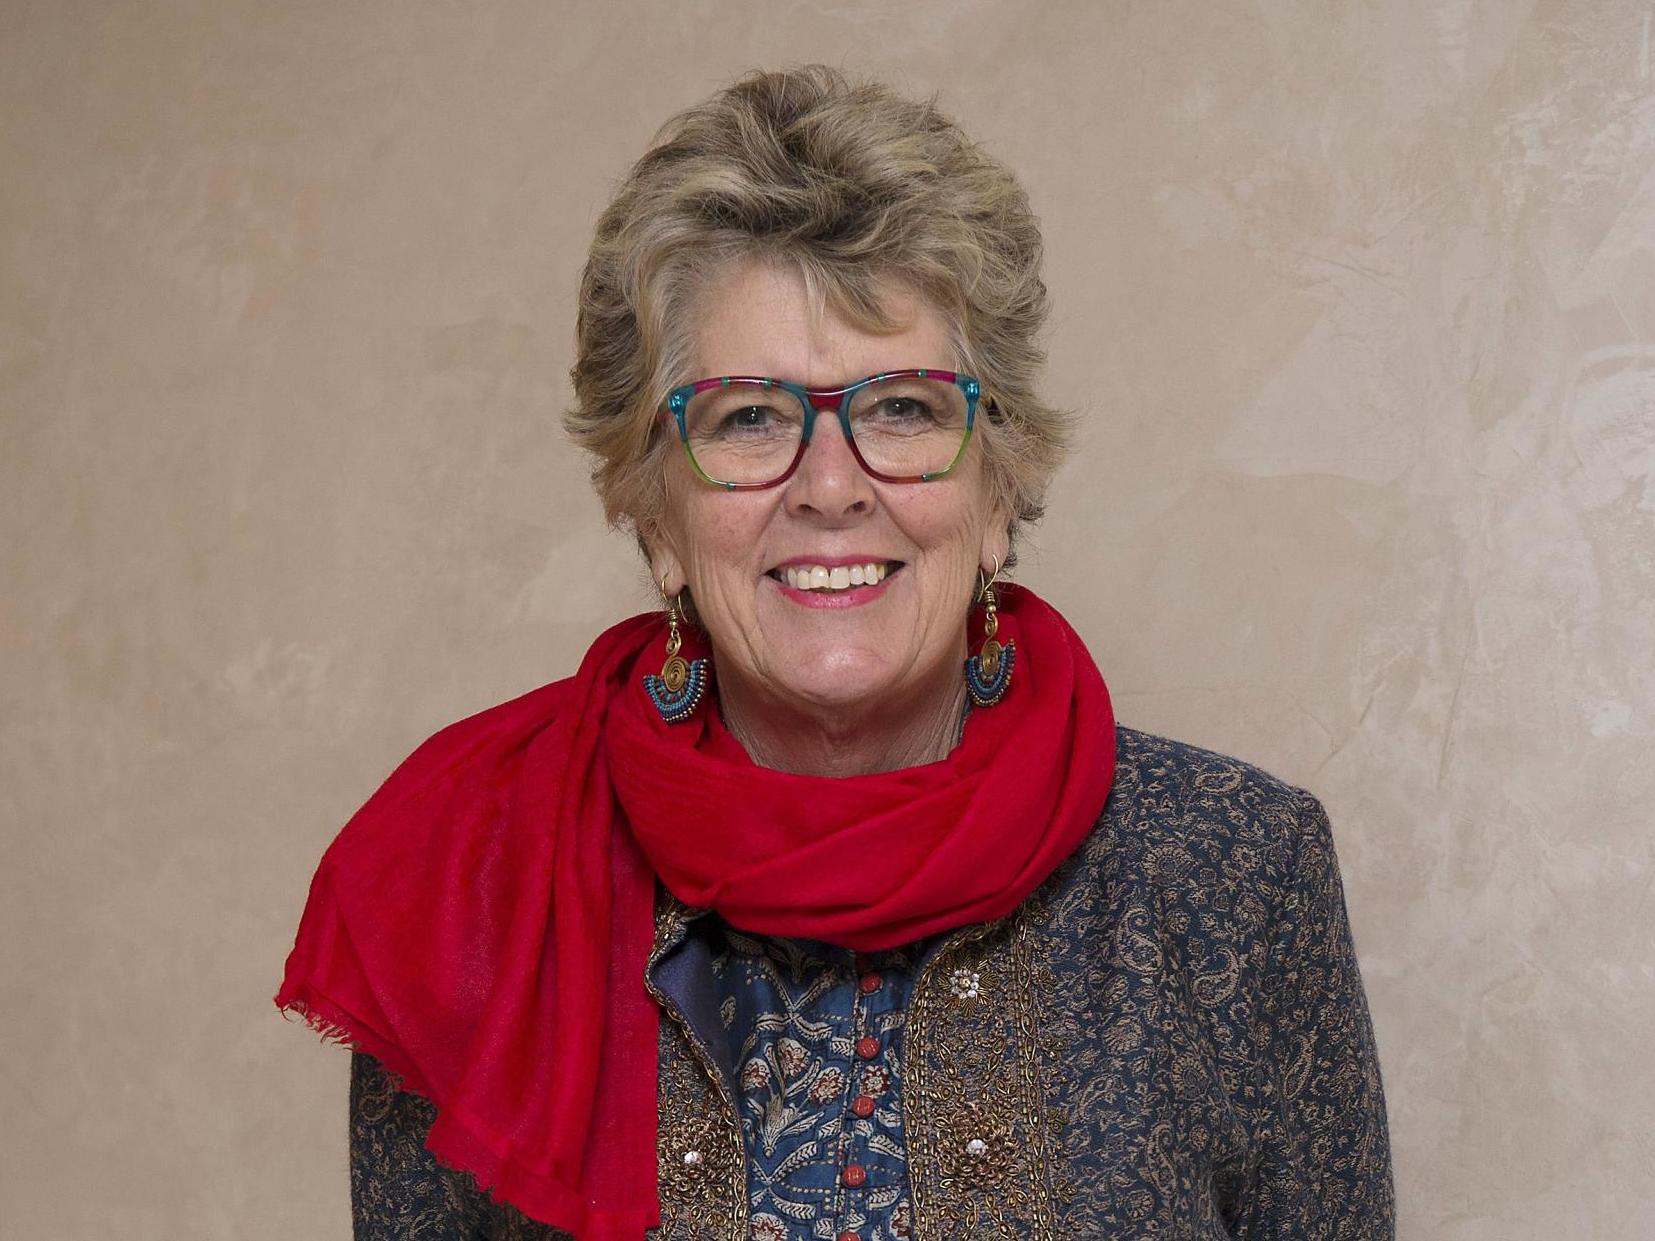 Prue Leith says UK is 'the most unbelievably class-ridden country'